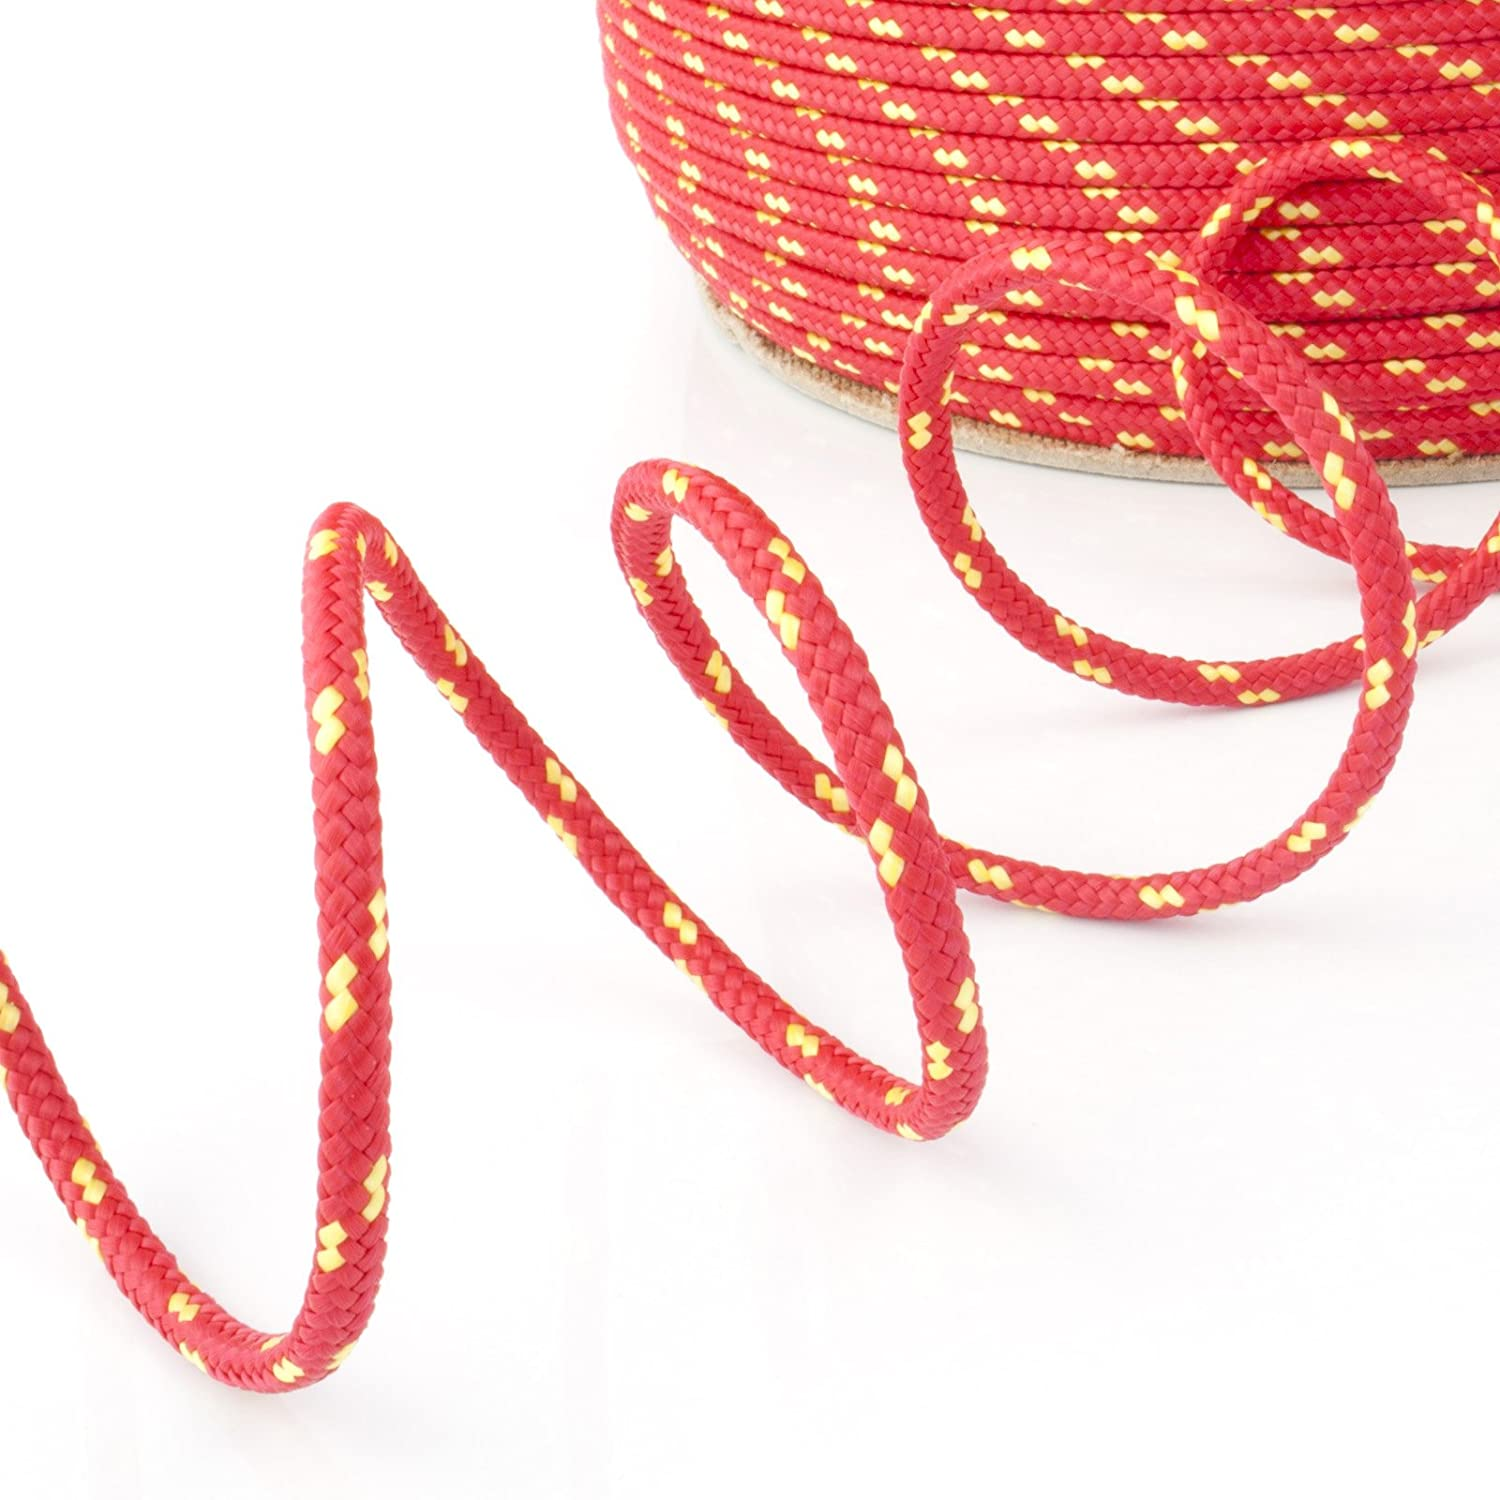 100m red polypropylene rope poly cord 20mm